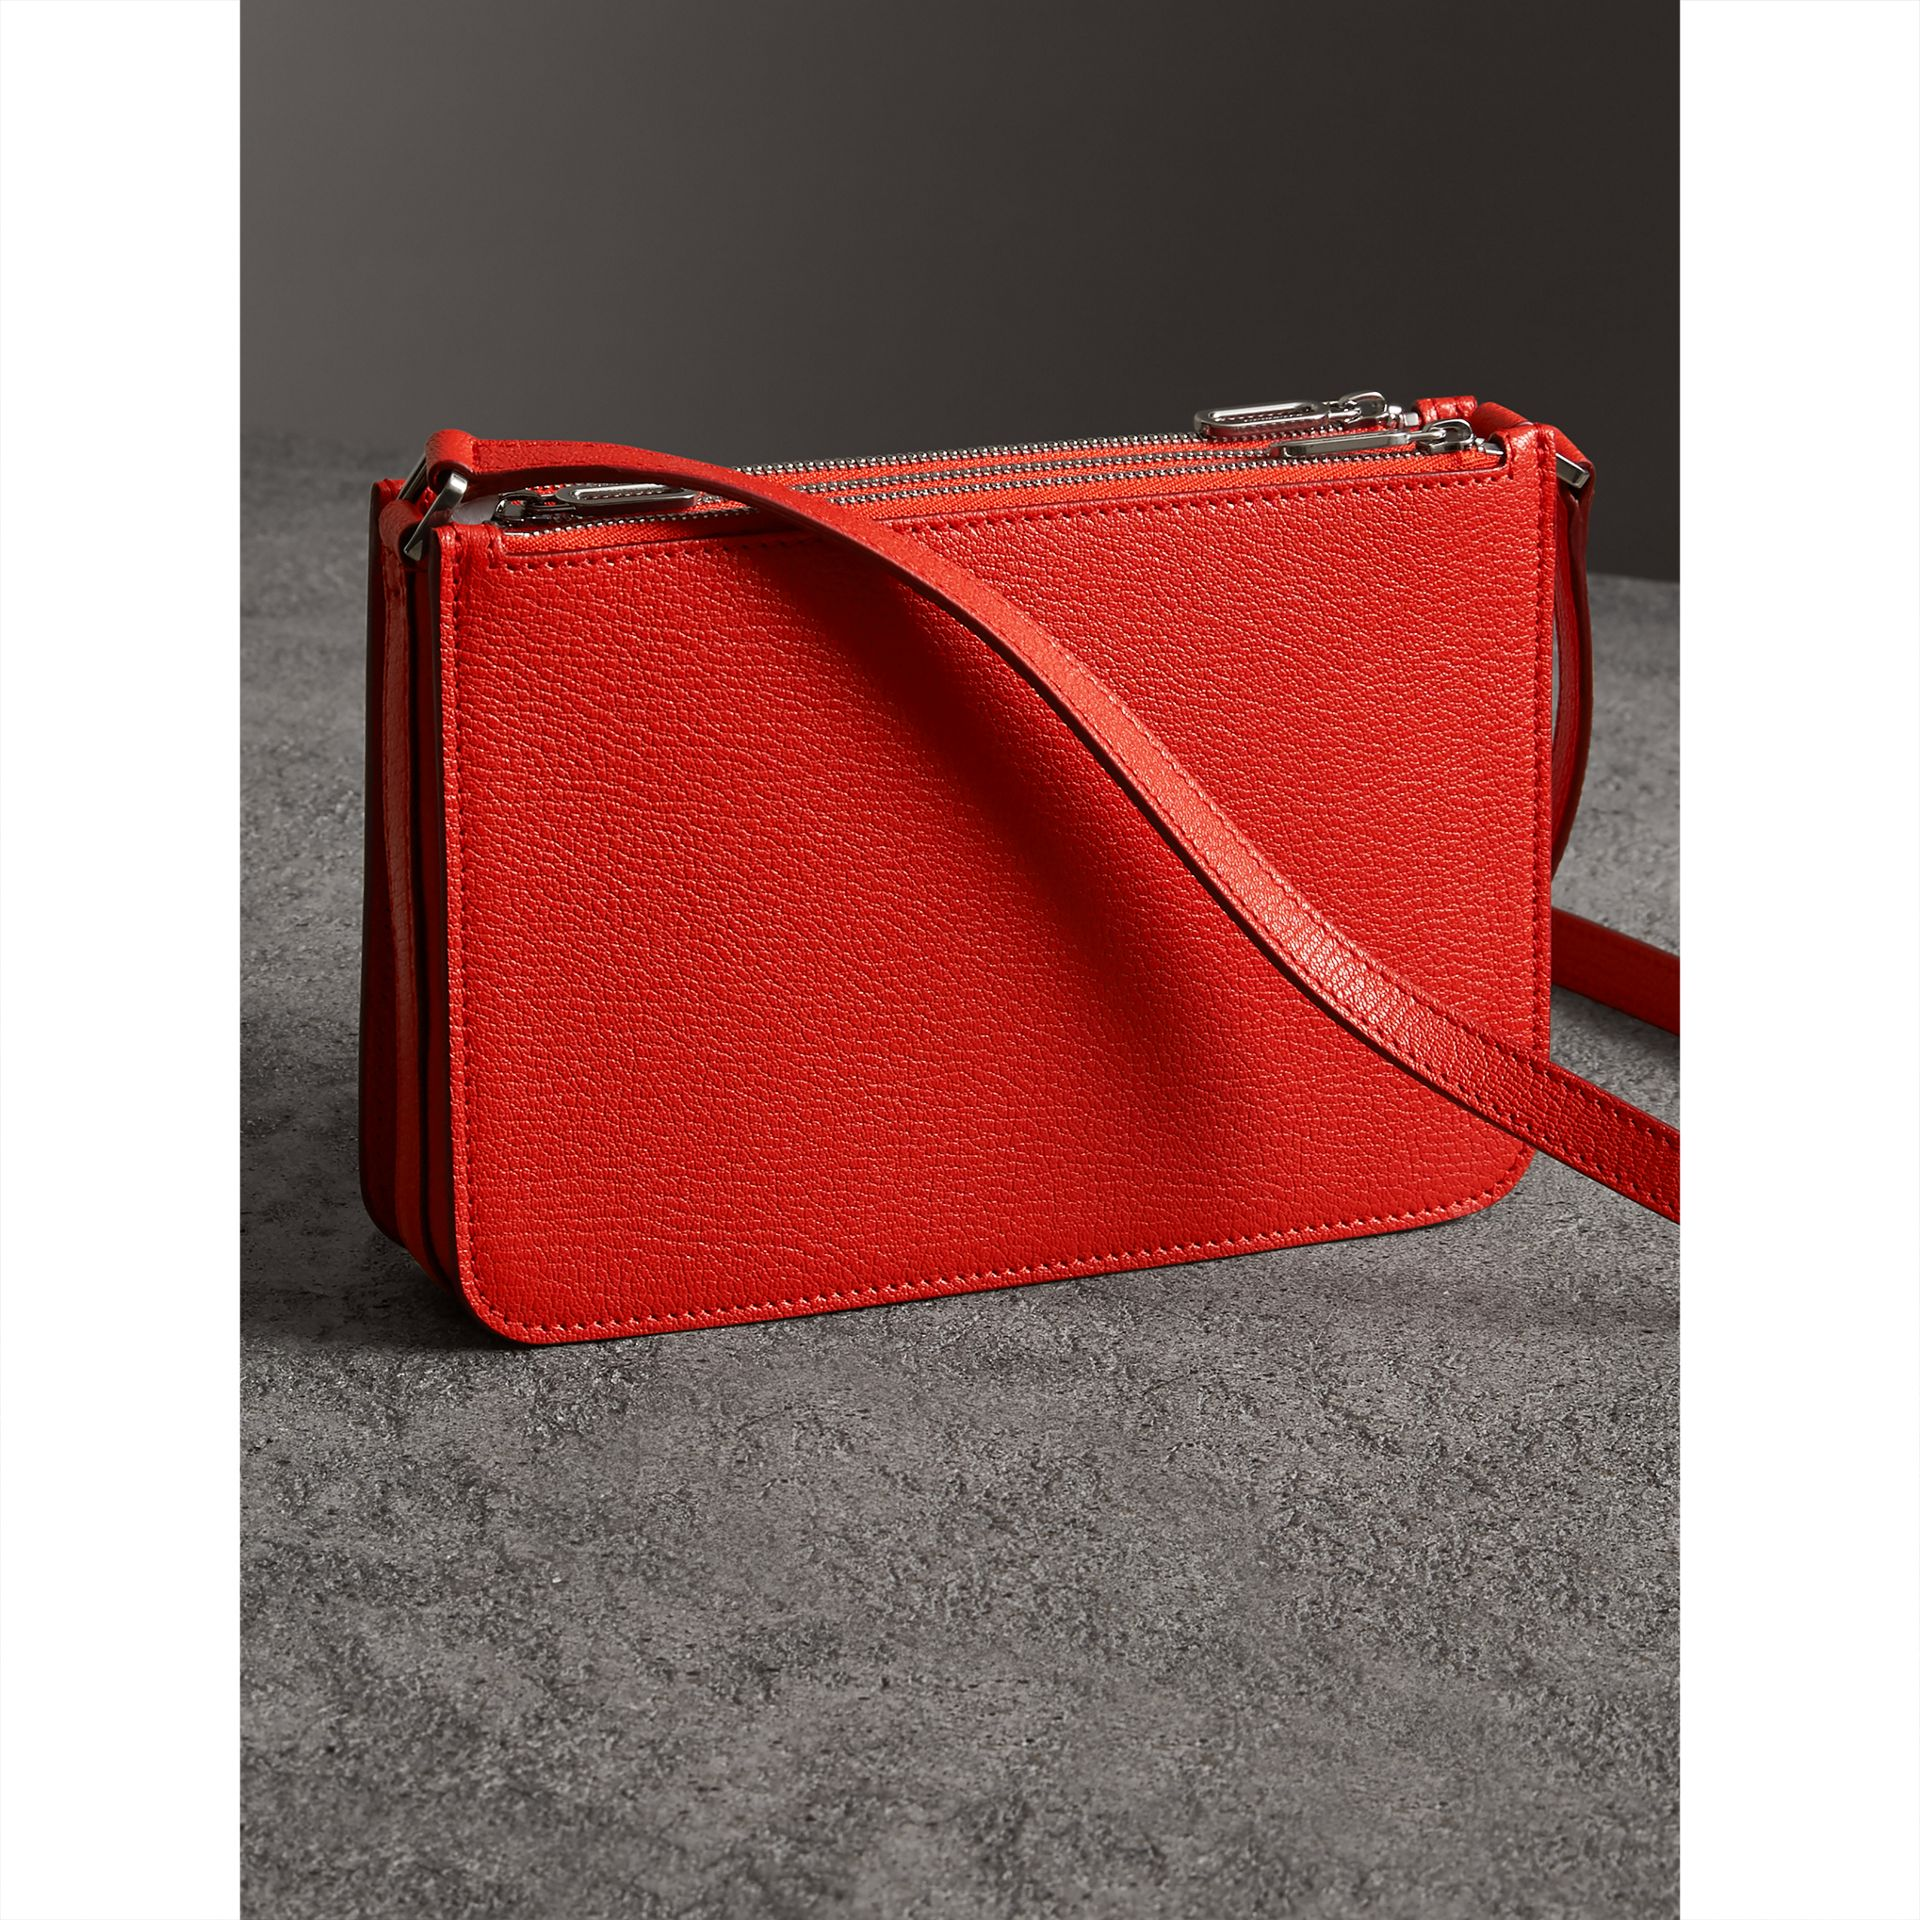 Triple Zip Grainy Leather Crossbody Bag in Bright Red - Women | Burberry United Kingdom - gallery image 4